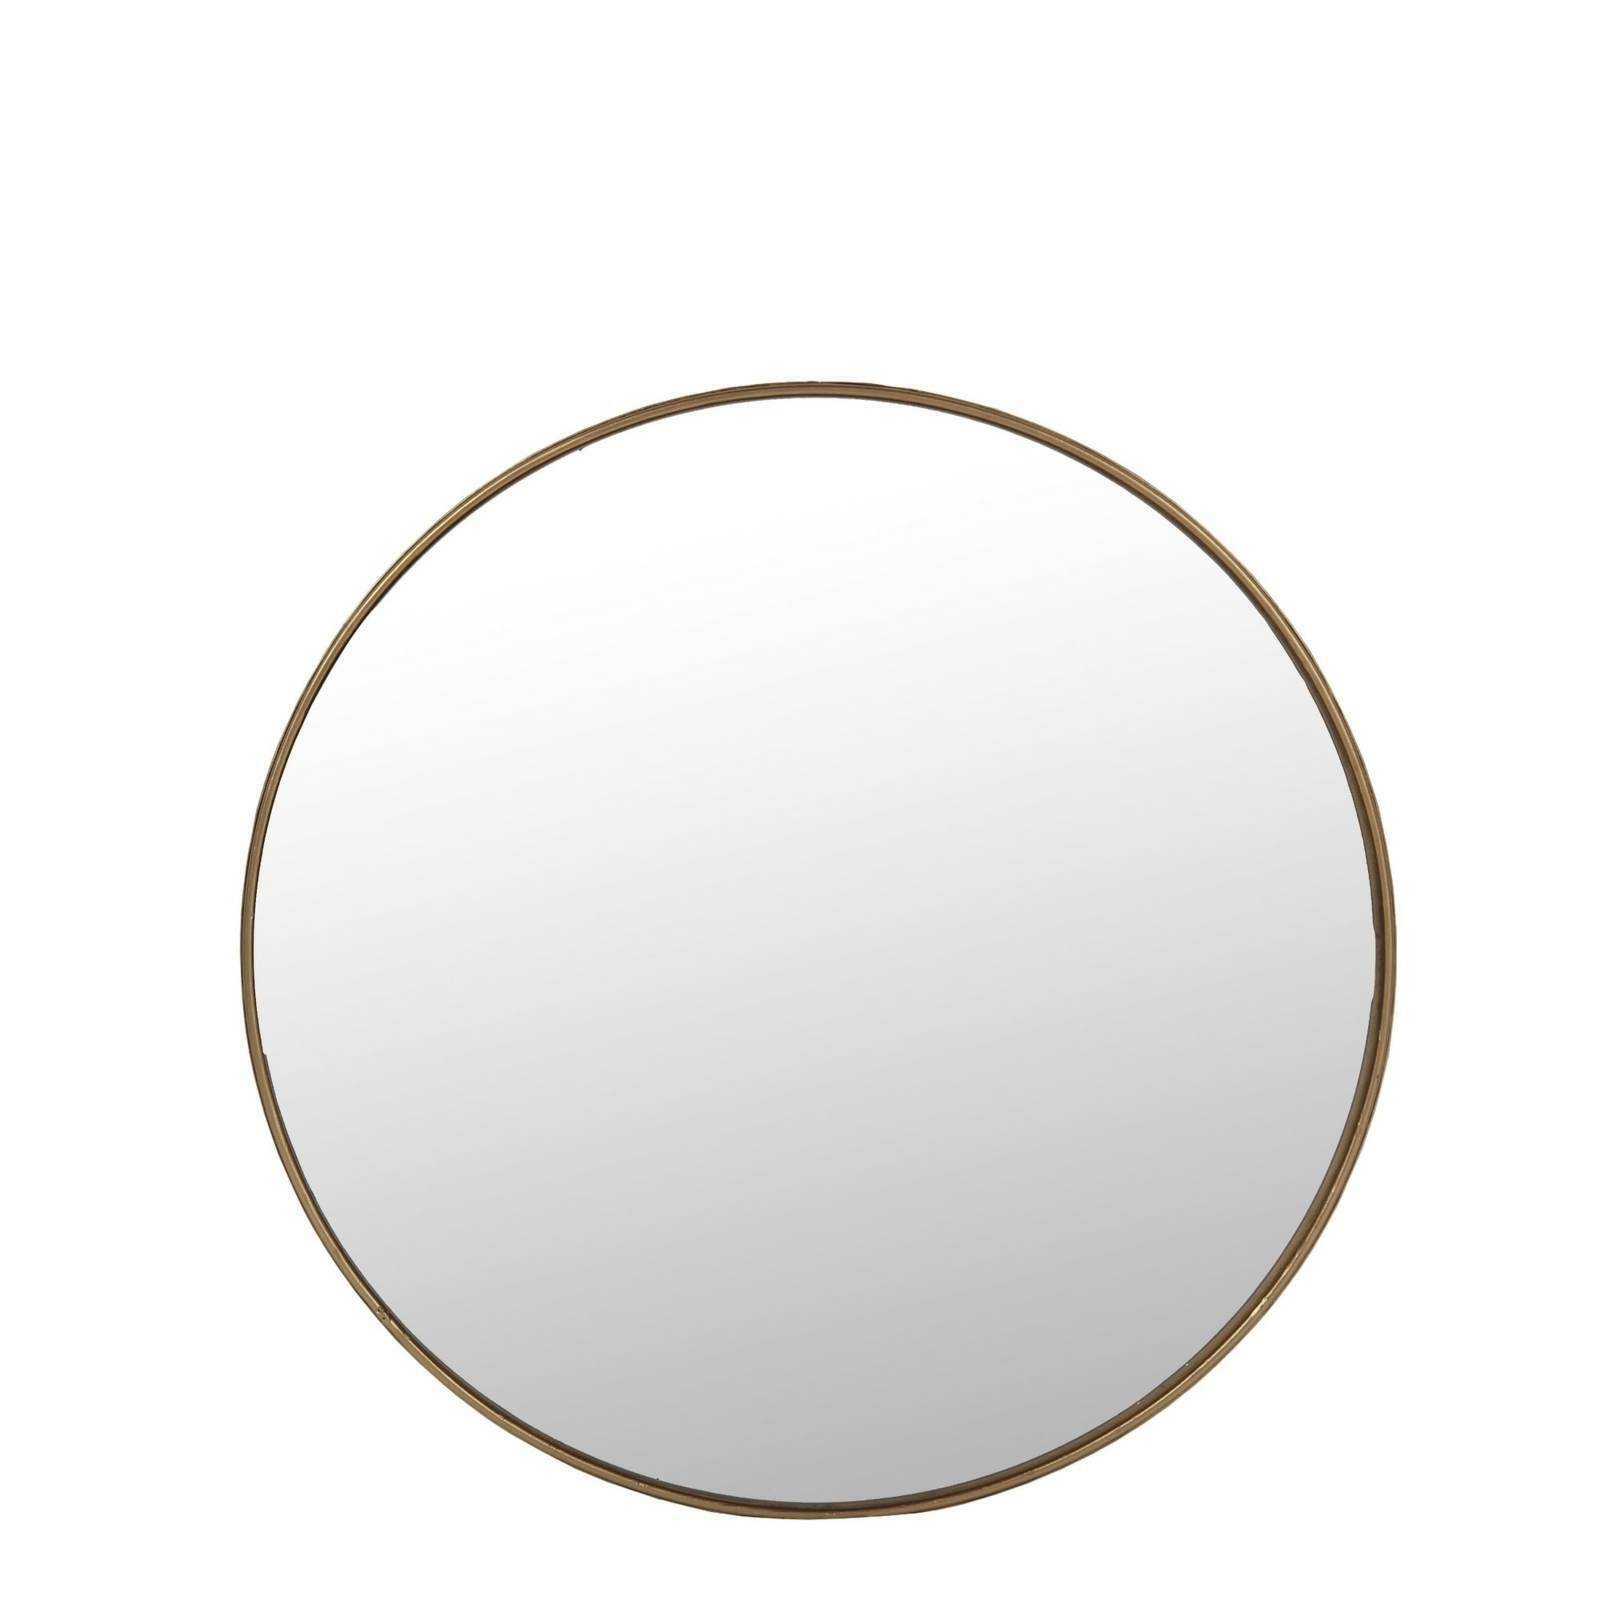 Details About Large Round Wall Mirror Gold Frame Wall Mounted Vertical  Orientation 15'' 32'' H With Regard To Vertical Round Wall Mirrors (Image 9 of 20)